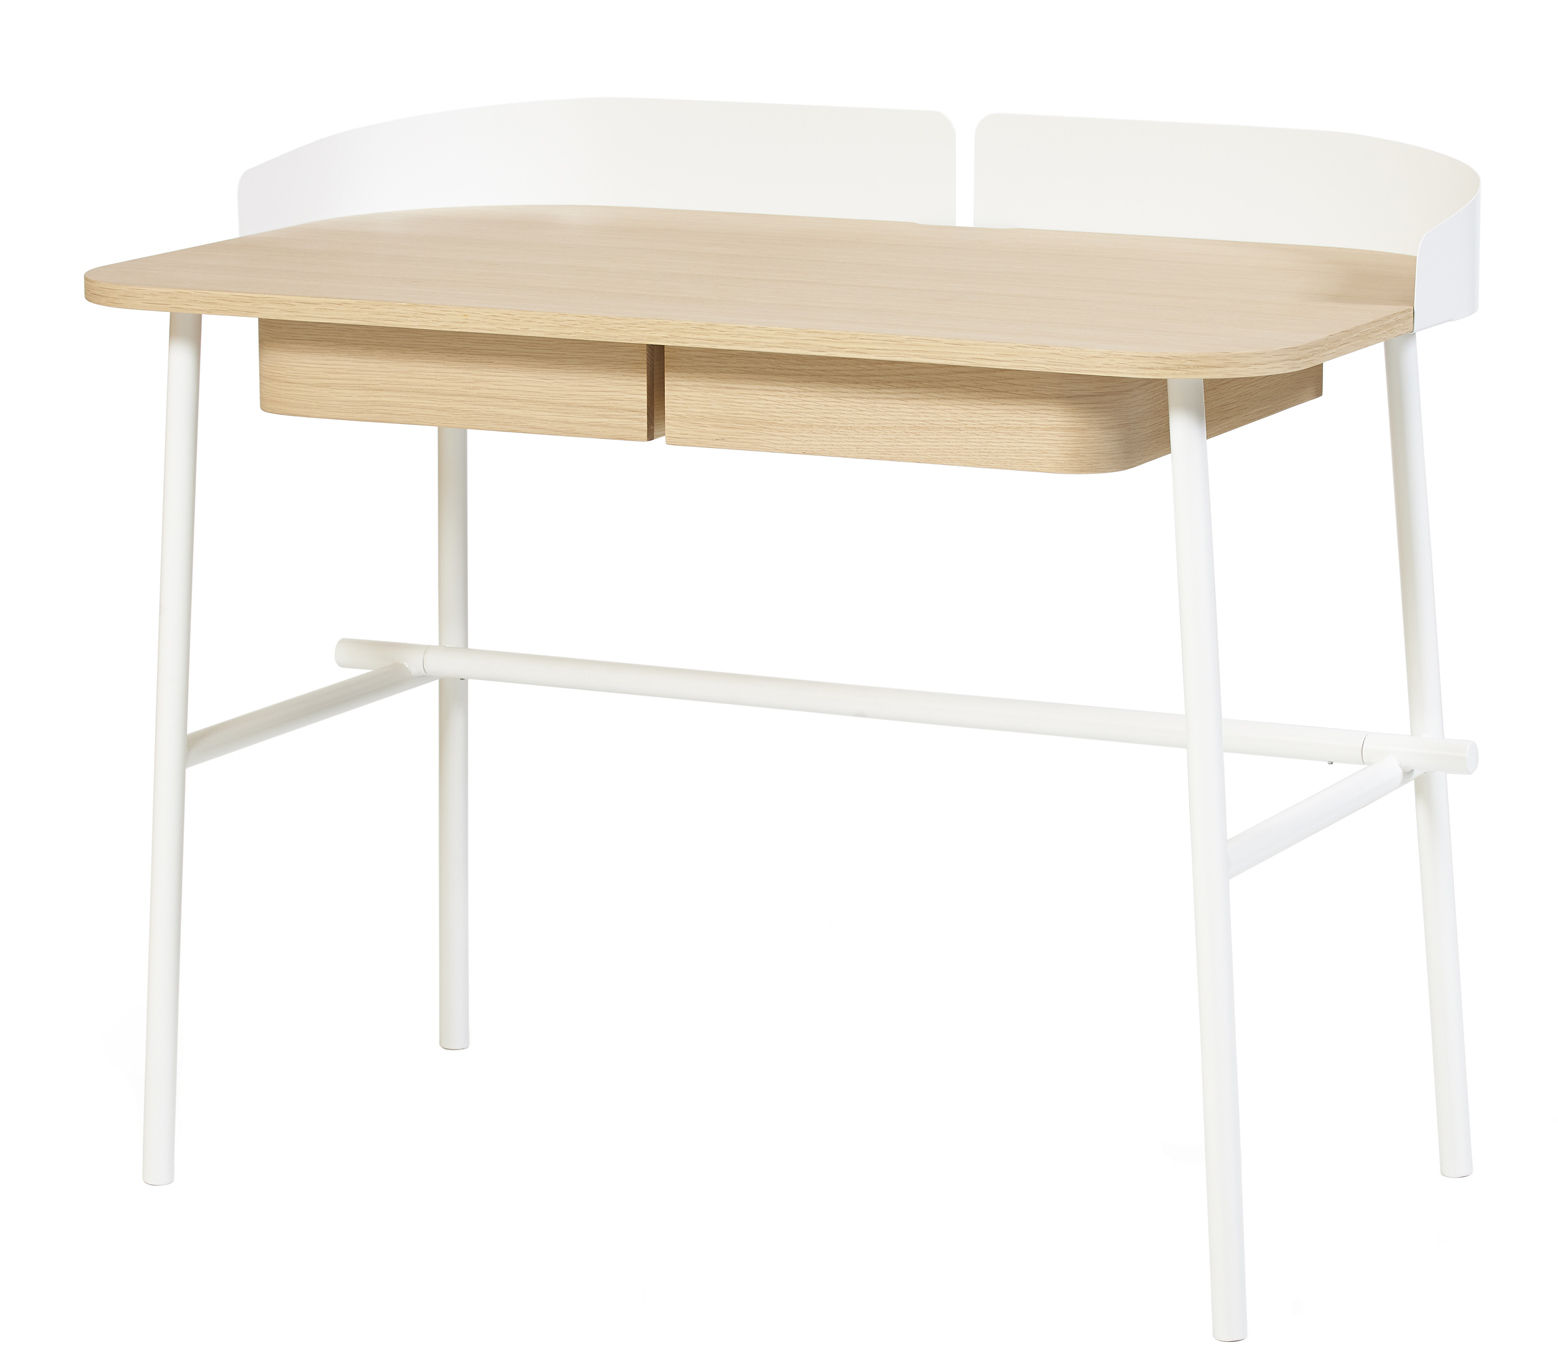 Furniture - Office Furniture - Victor Desk by Hartô - White / Natural wood - Lacquered metal, MDF veneer oak